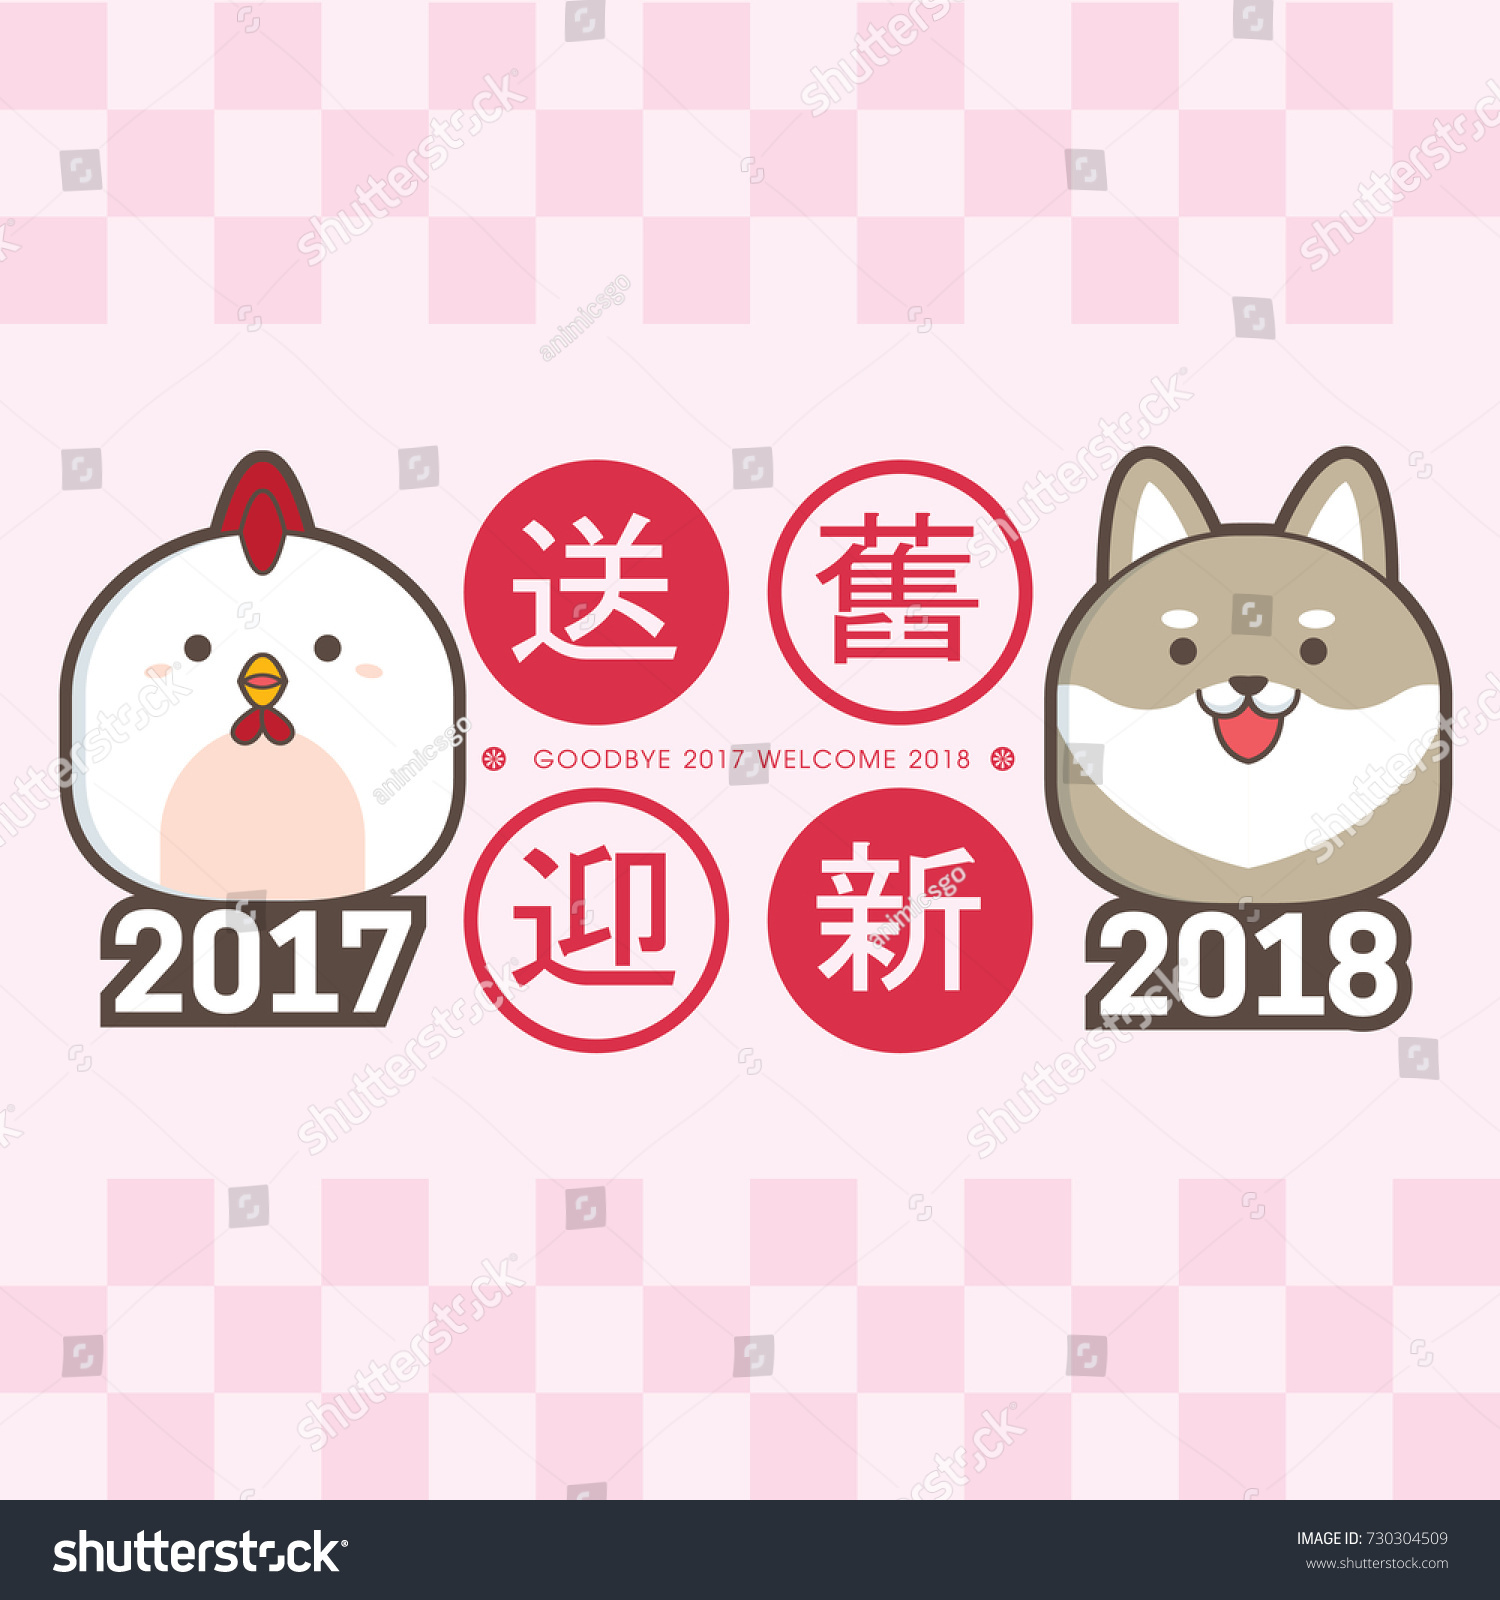 2018 chinese new year greeting card stock vector 730304509 2018 chinese new year greeting card template with cute chicken puppy translation m4hsunfo Gallery